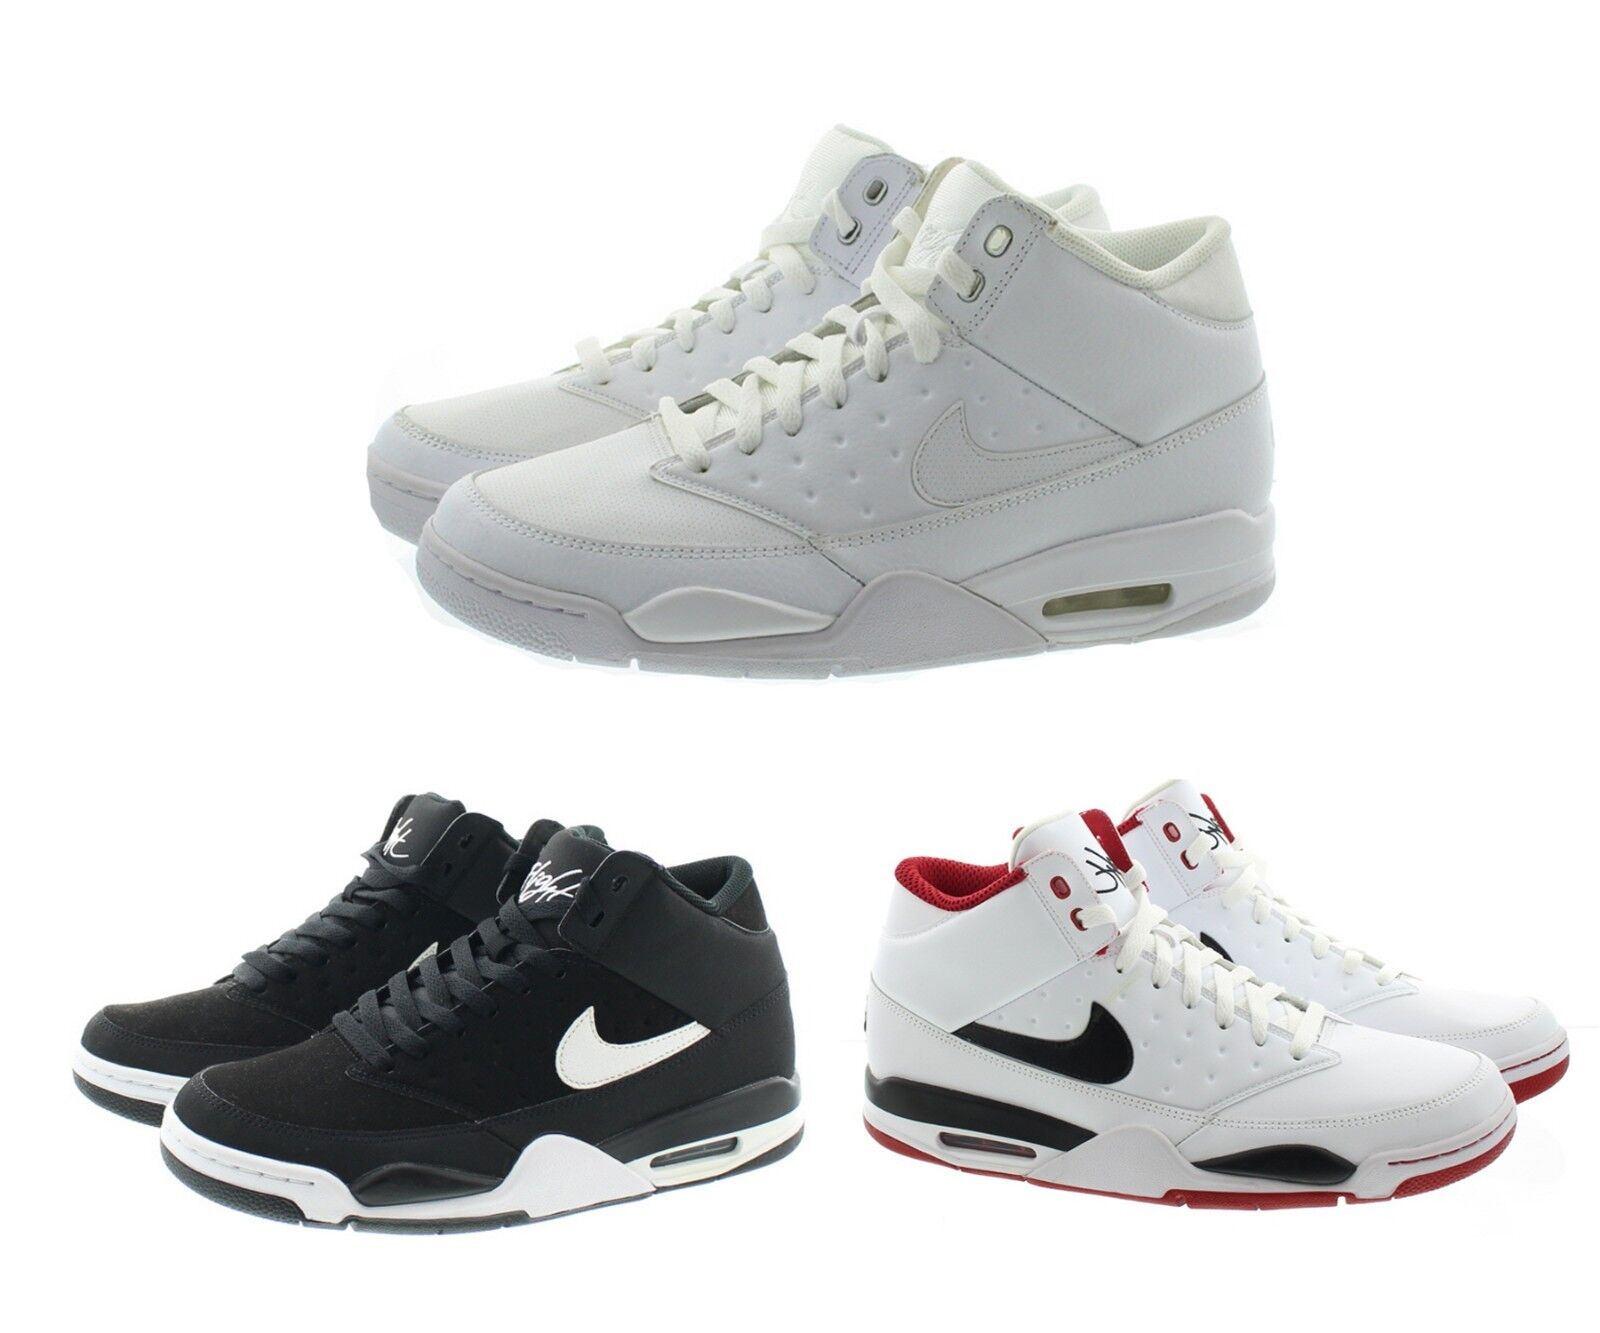 Nike 414967 Men's Air Flight Classic Mid Top Basketball shoes Sneakers